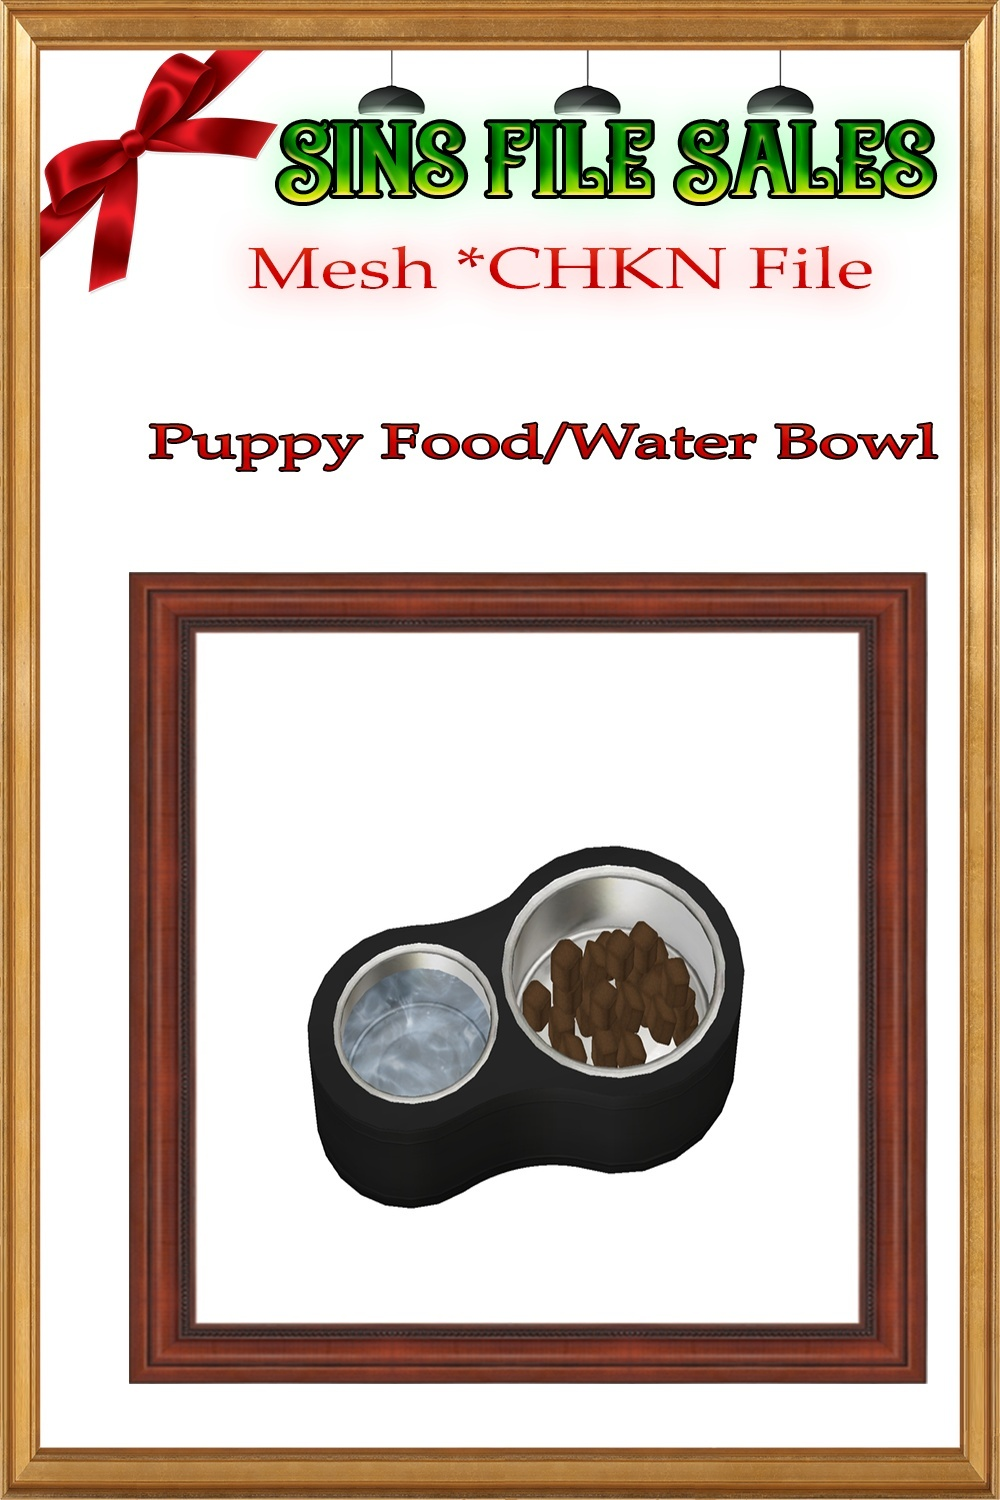 Puppy Food Bowl *CHKN